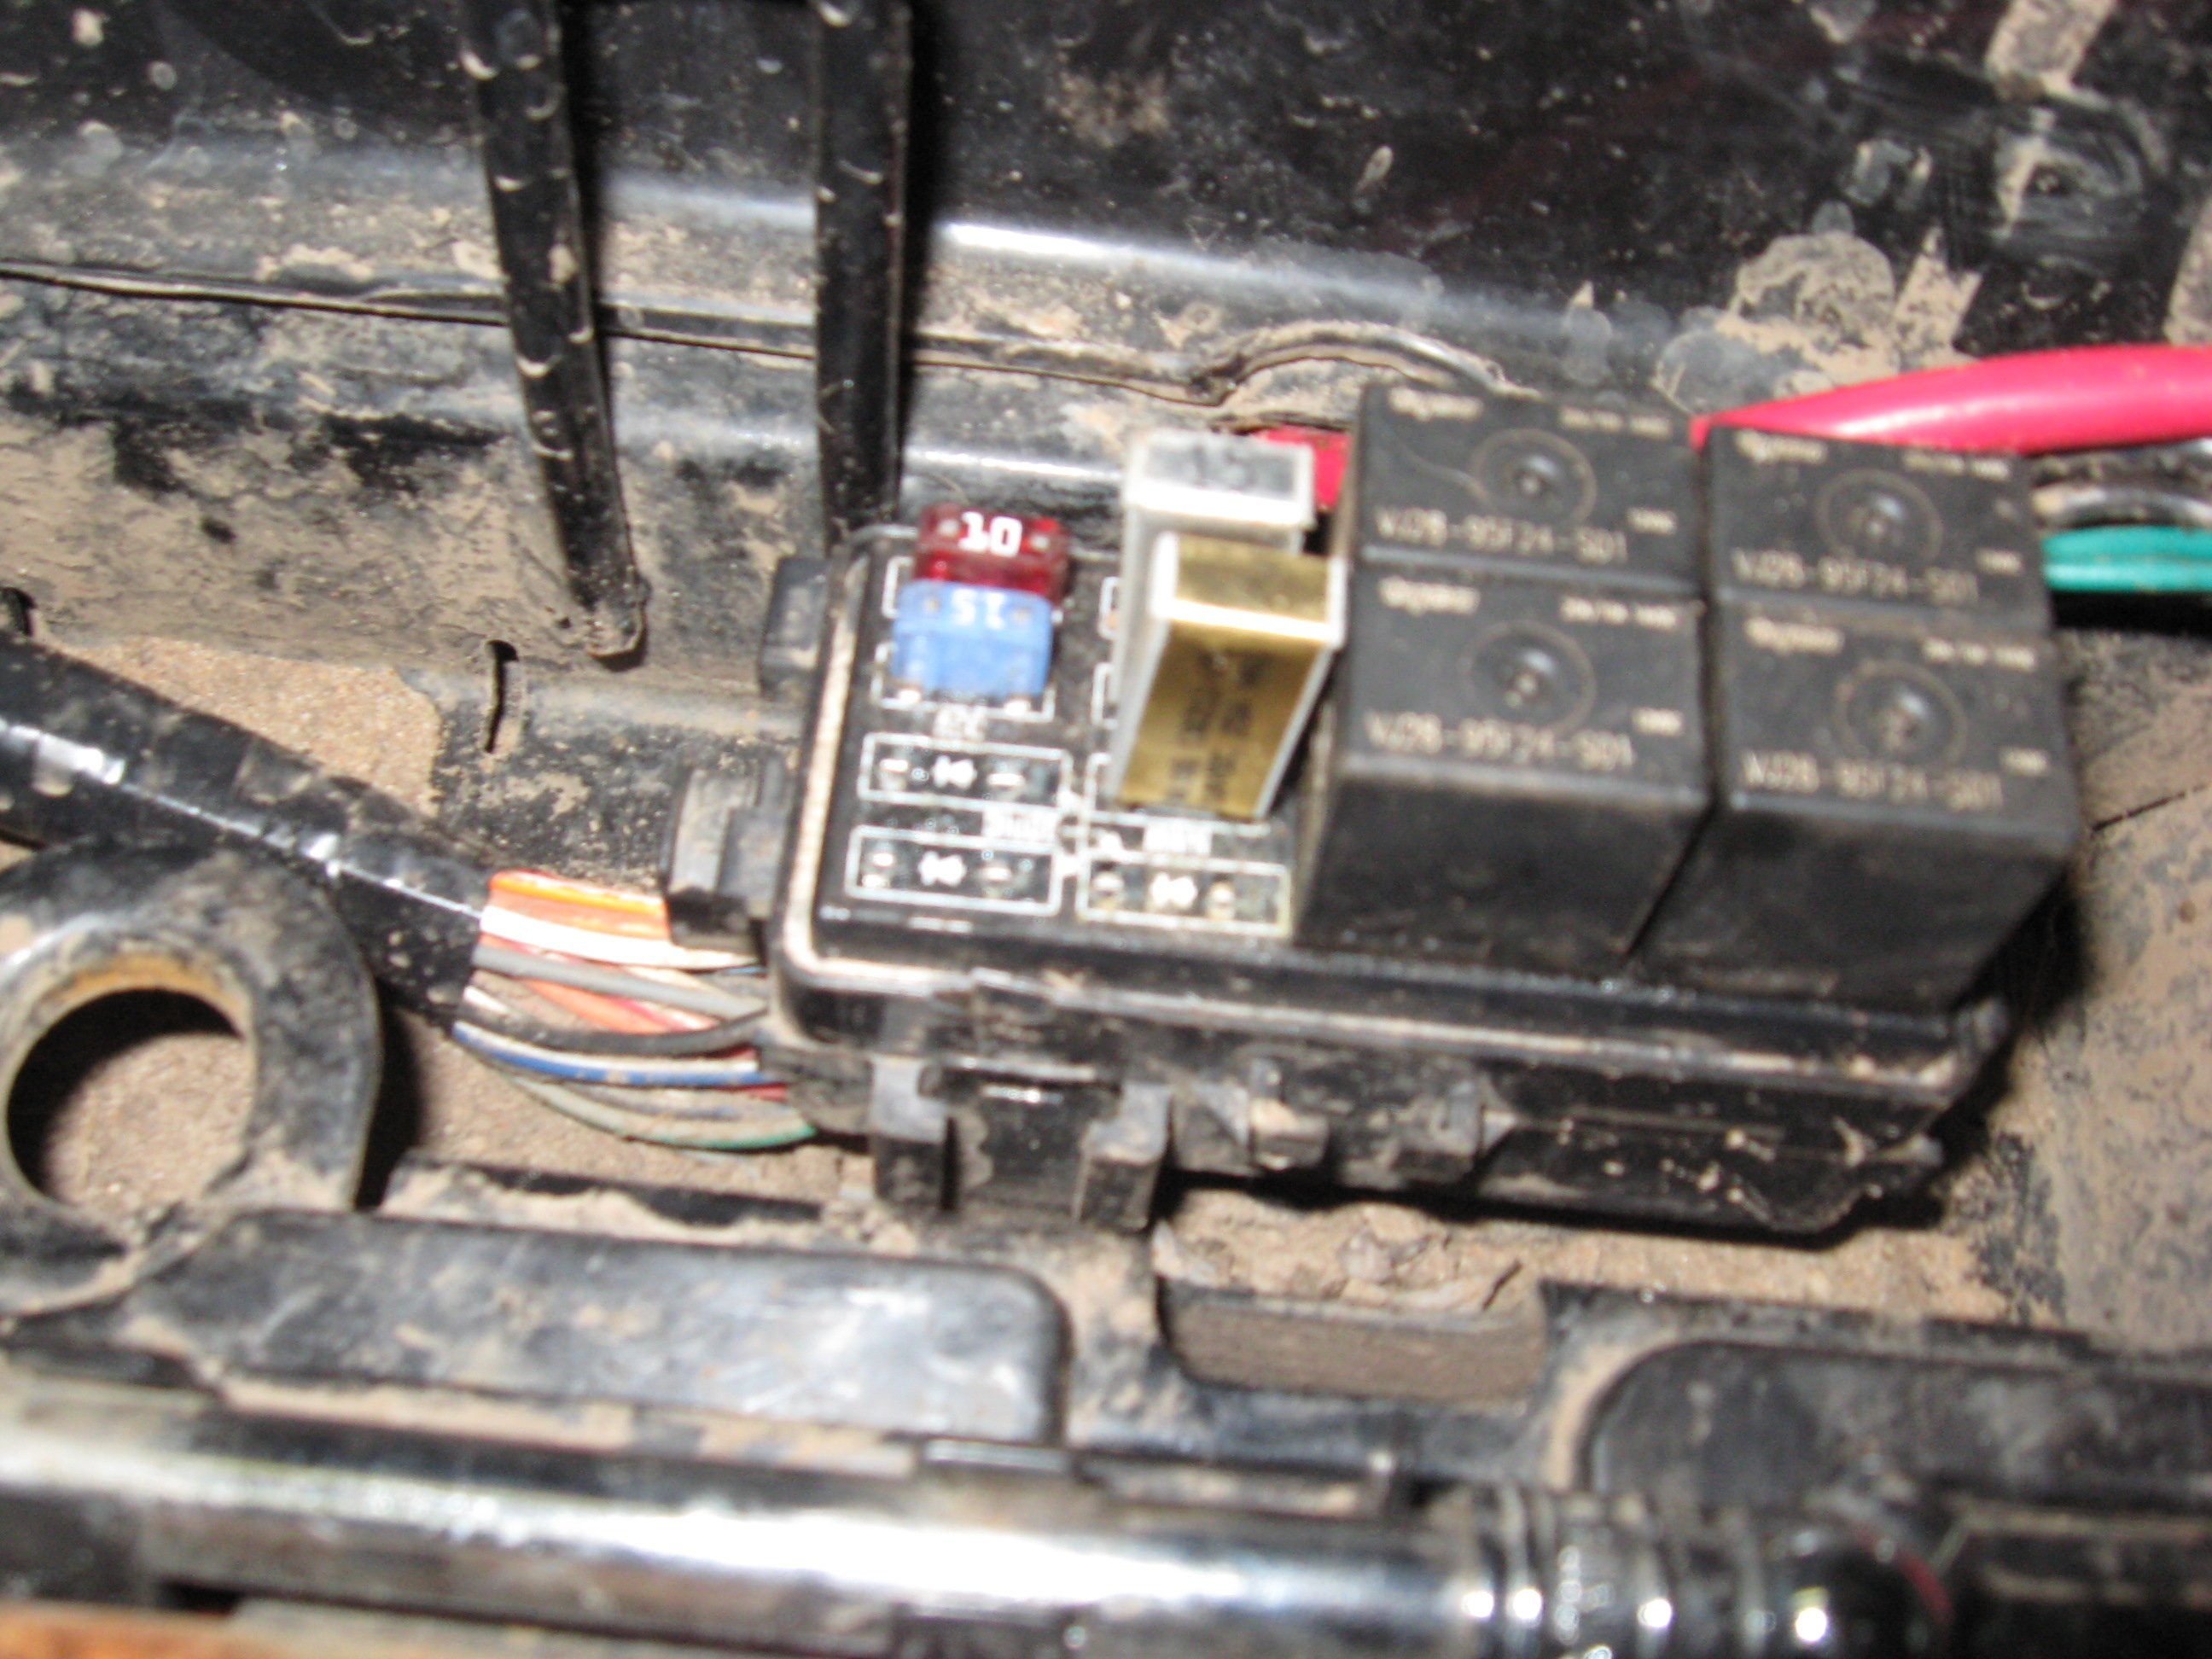 2004 Bombardier Outlander 400 Fuse Location - Wiring Yamaha Diagram Switch  Ignition Ttr225r - vw-t5.yenpancane.jeanjaures37.fr | 2004 Bombardier Outlander 400 Fuse Location |  | Wiring Diagram Resource